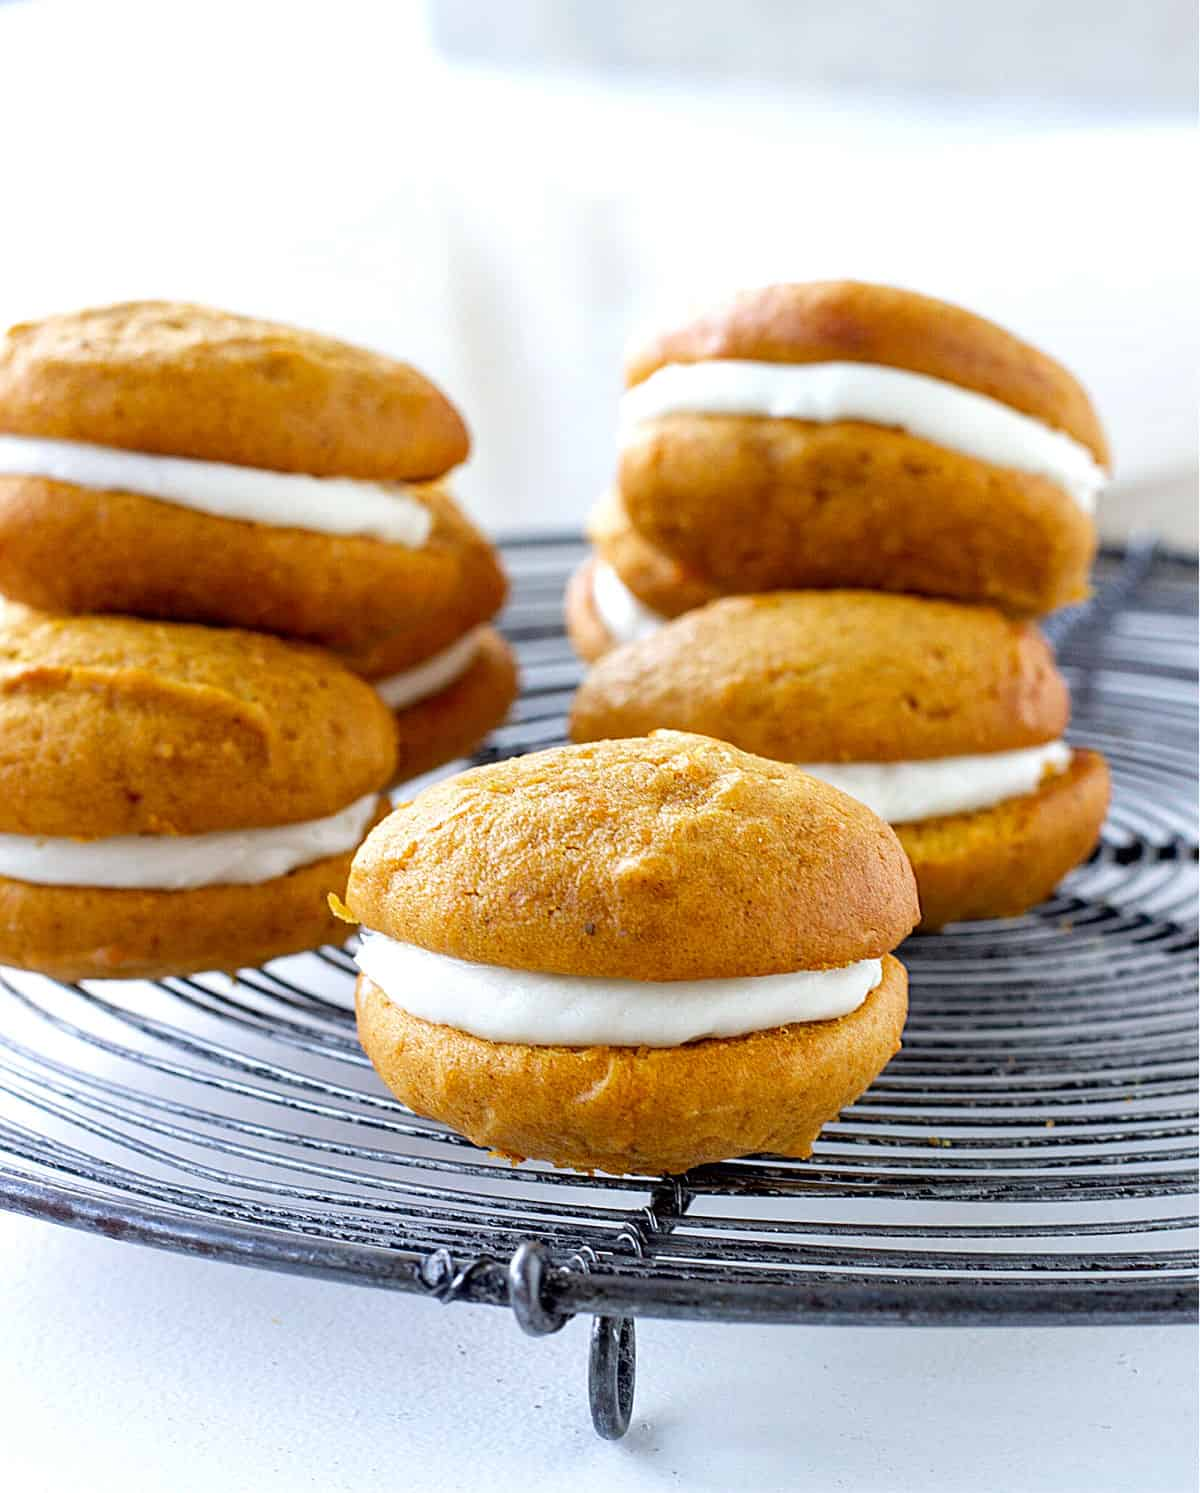 One pumpkin whoopie pie in focus and several others blurred on a round wire rack